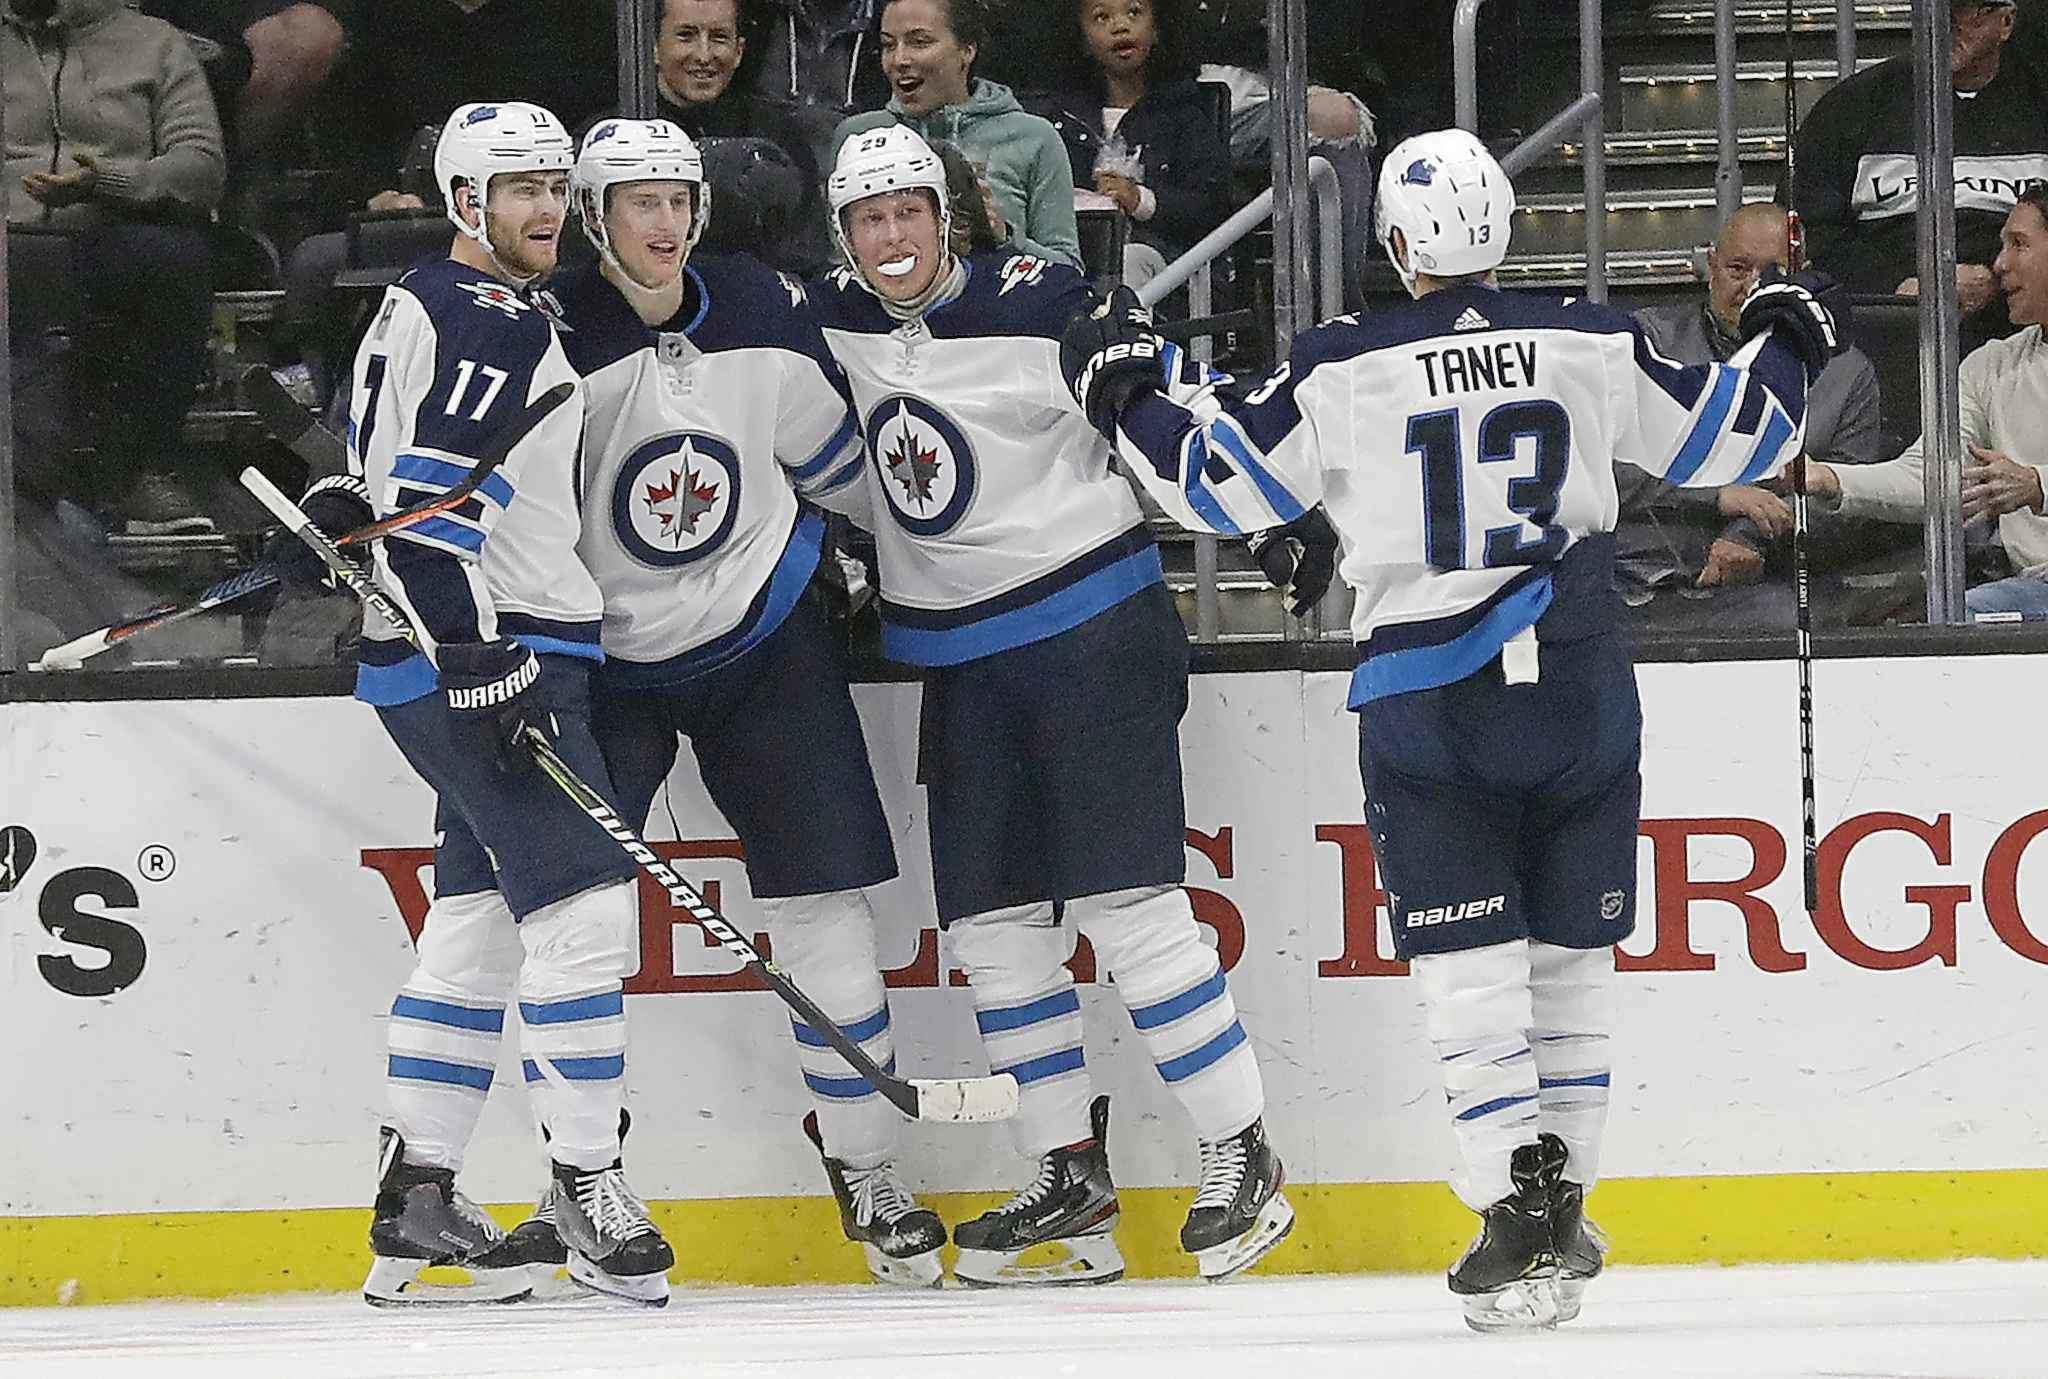 (AP Photo/Marcio Jose Sanchez)</p><p>Winnipeg Jets celebrate Tyler Myers' goal during the second period against the Los Angeles Kings Monday, in Los Angeles. </p>